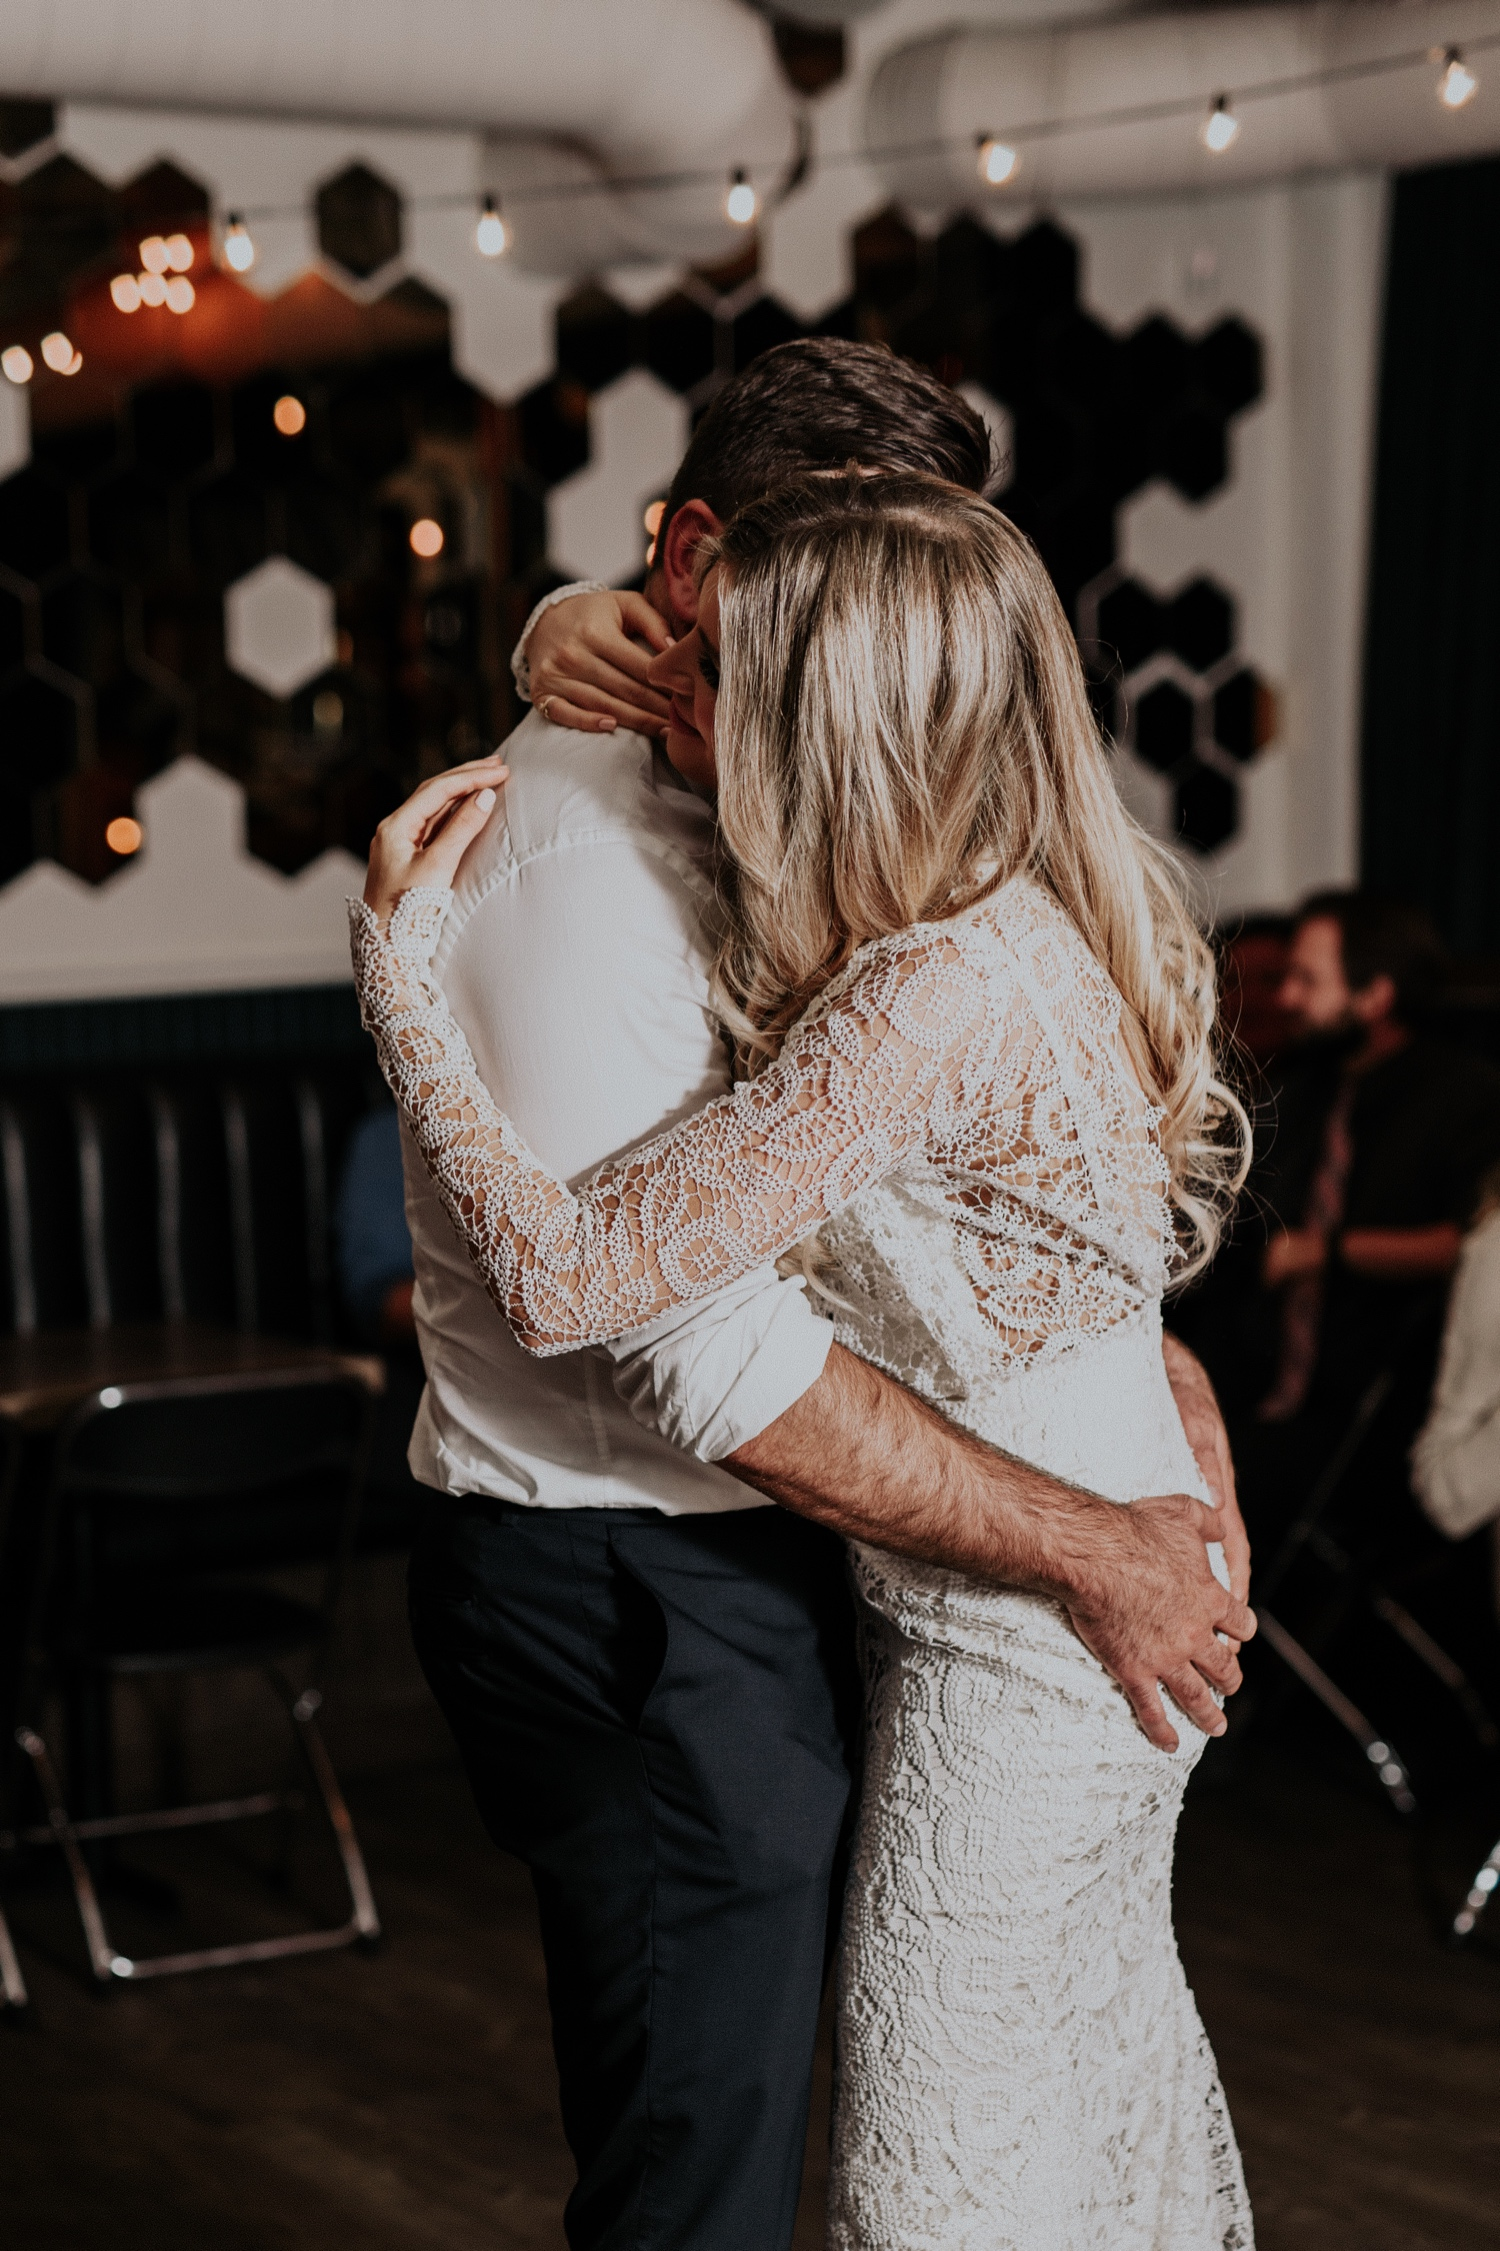 Wedding and Elopement Photography_Karly Ford Photo 71.jpg